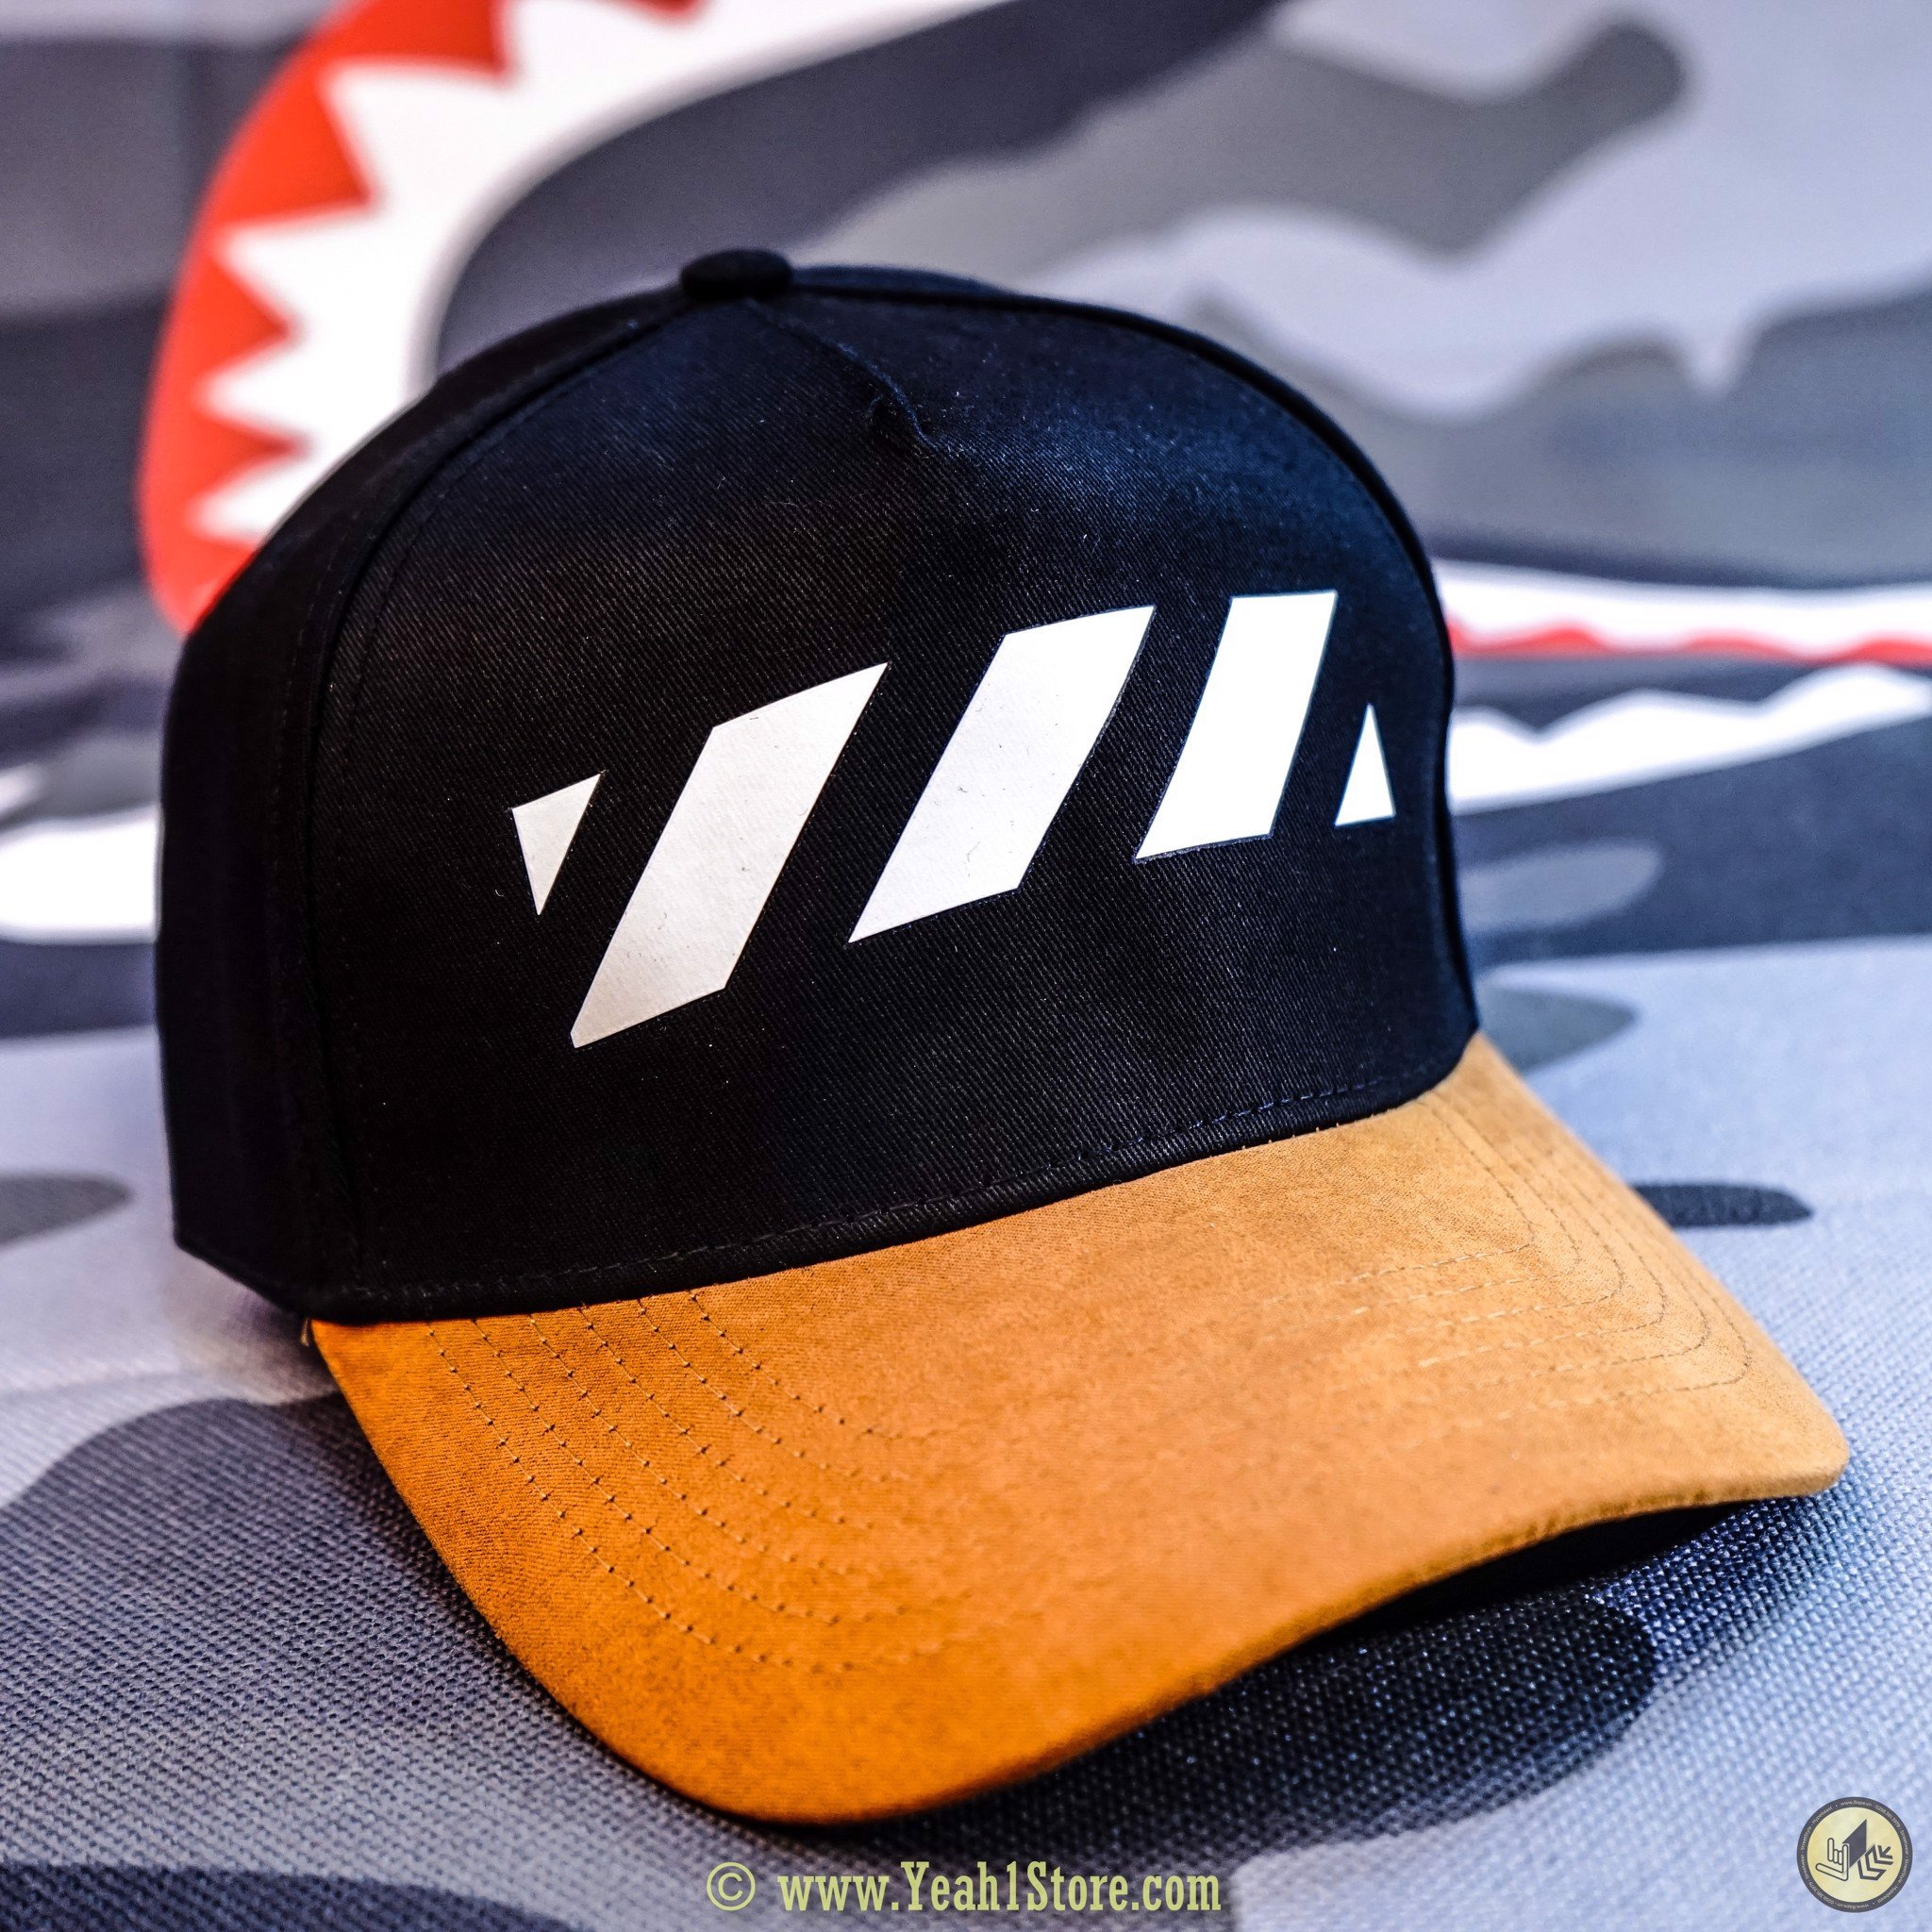 OFF-WHITE™ HAT 02 - NÓN LƯỠI TRAI OFF-WHITE™